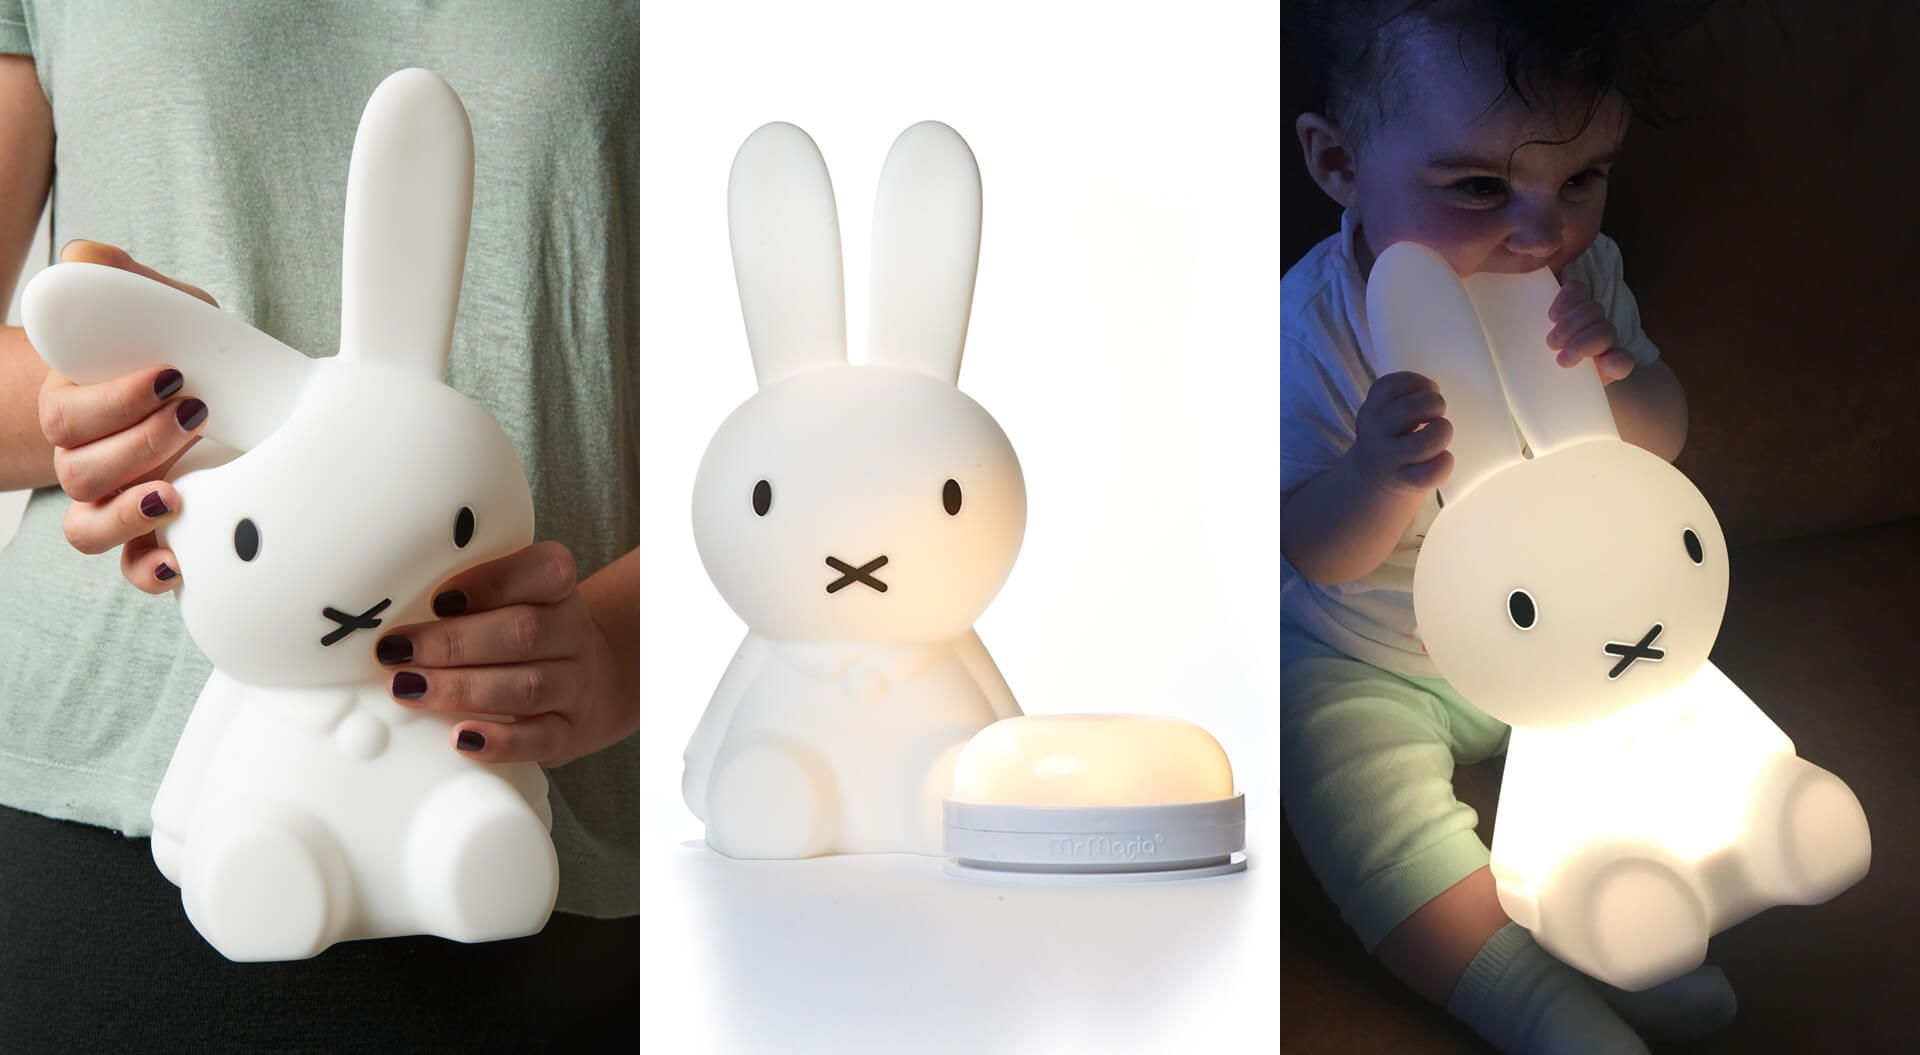 Mr Maria lamps, Miffy First Light, usb rechargeable, Soft silicone